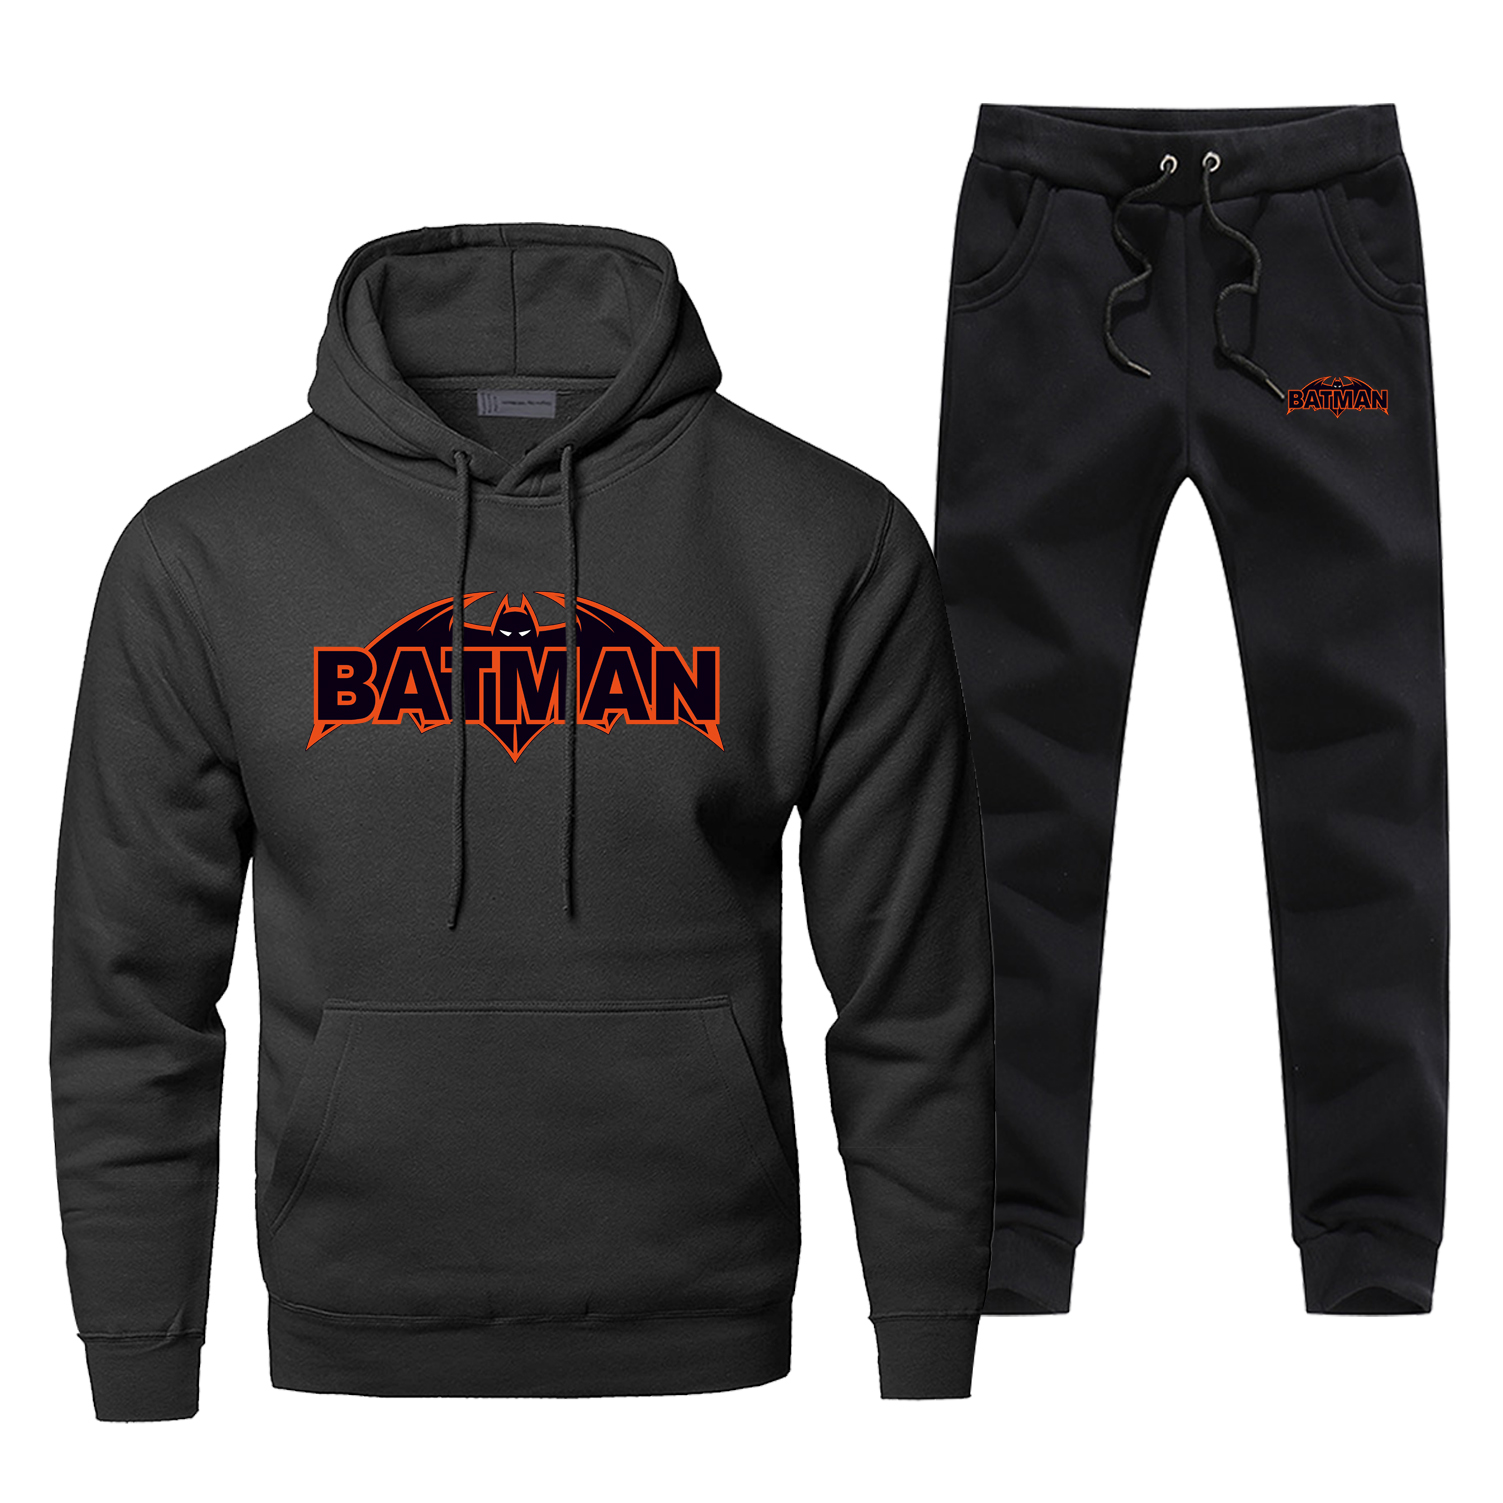 Funny Superhero Batman LOGO Hoodies Pants Sets Sweatshirt Men Hip Hop Tracksuit Winter Fleece Streetwear Sportswear Sweatpants